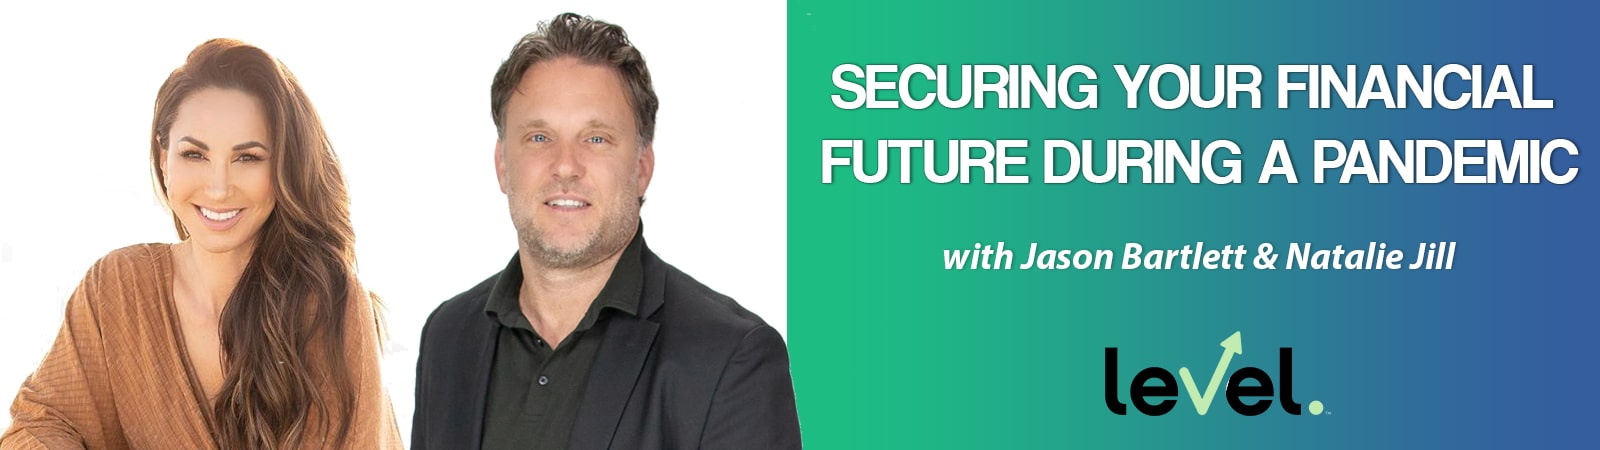 Financial Future During a Pandemic with Jason Bartlett